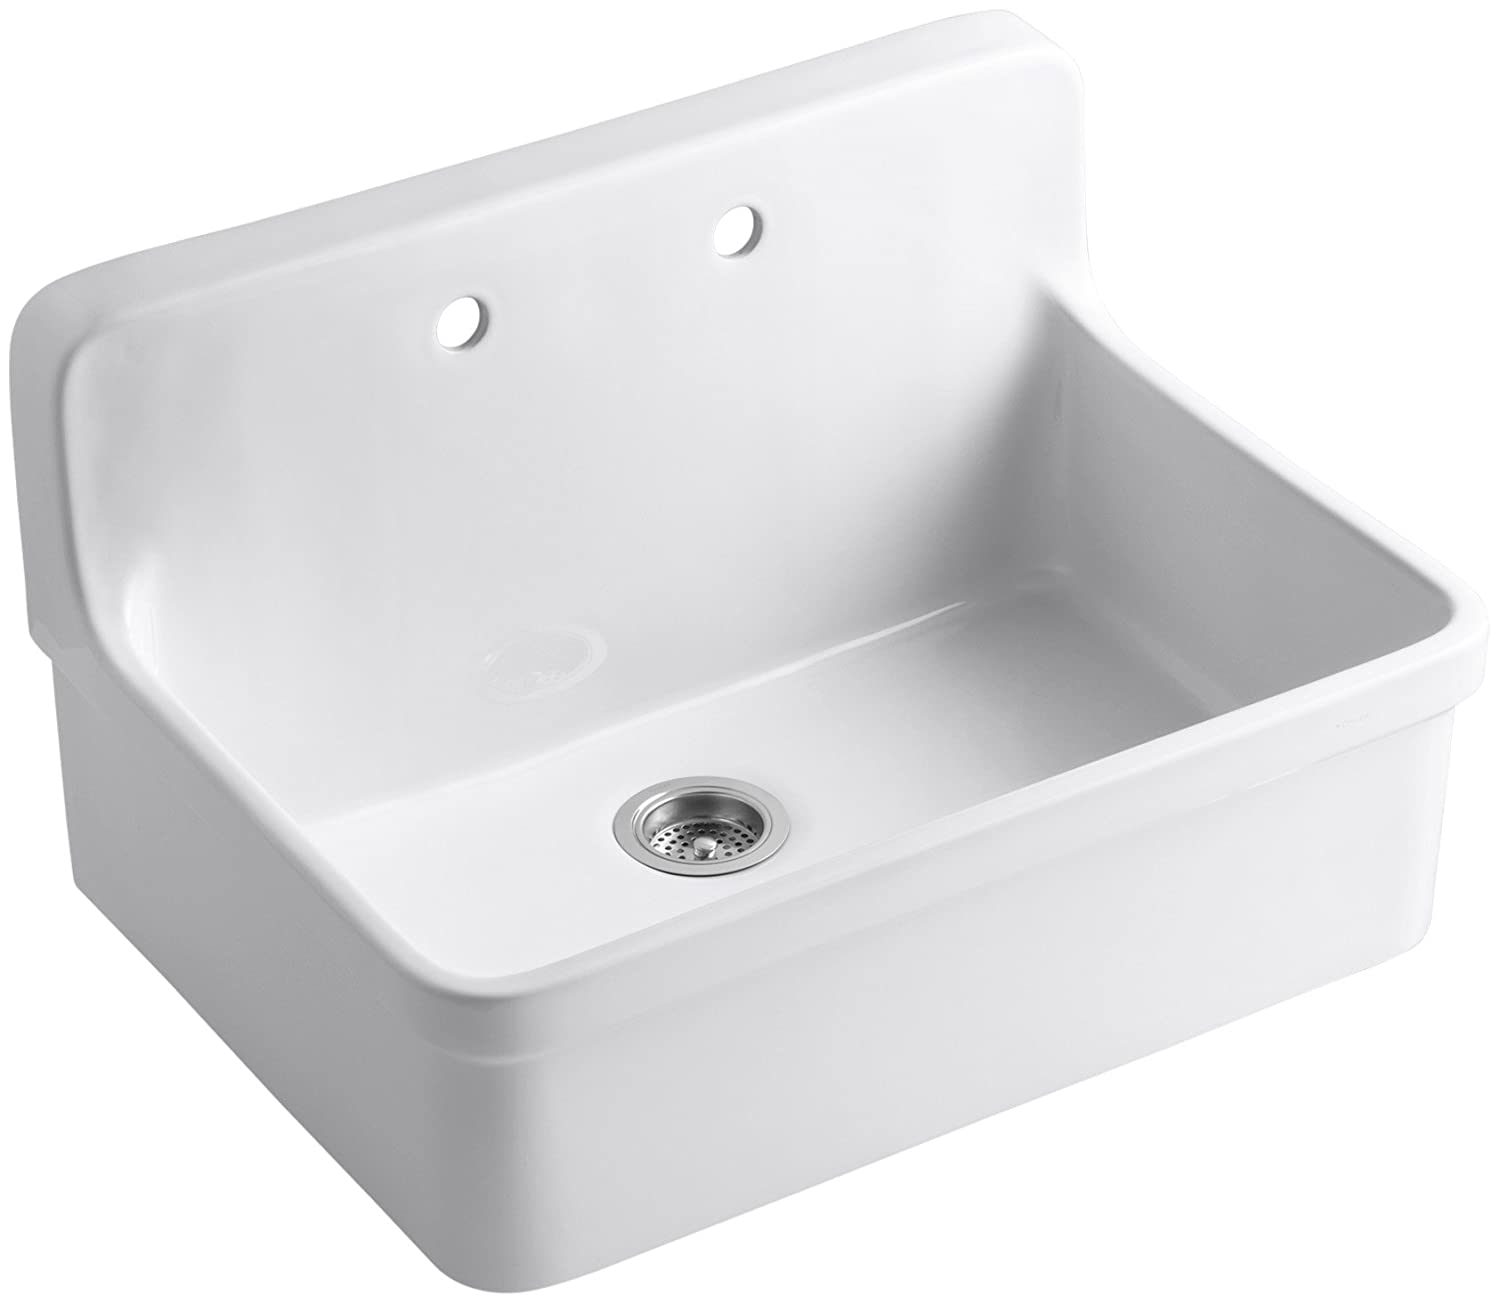 kohler k127000 gilford apronfront wallmount kitchen sink white single bowl sinks amazoncom